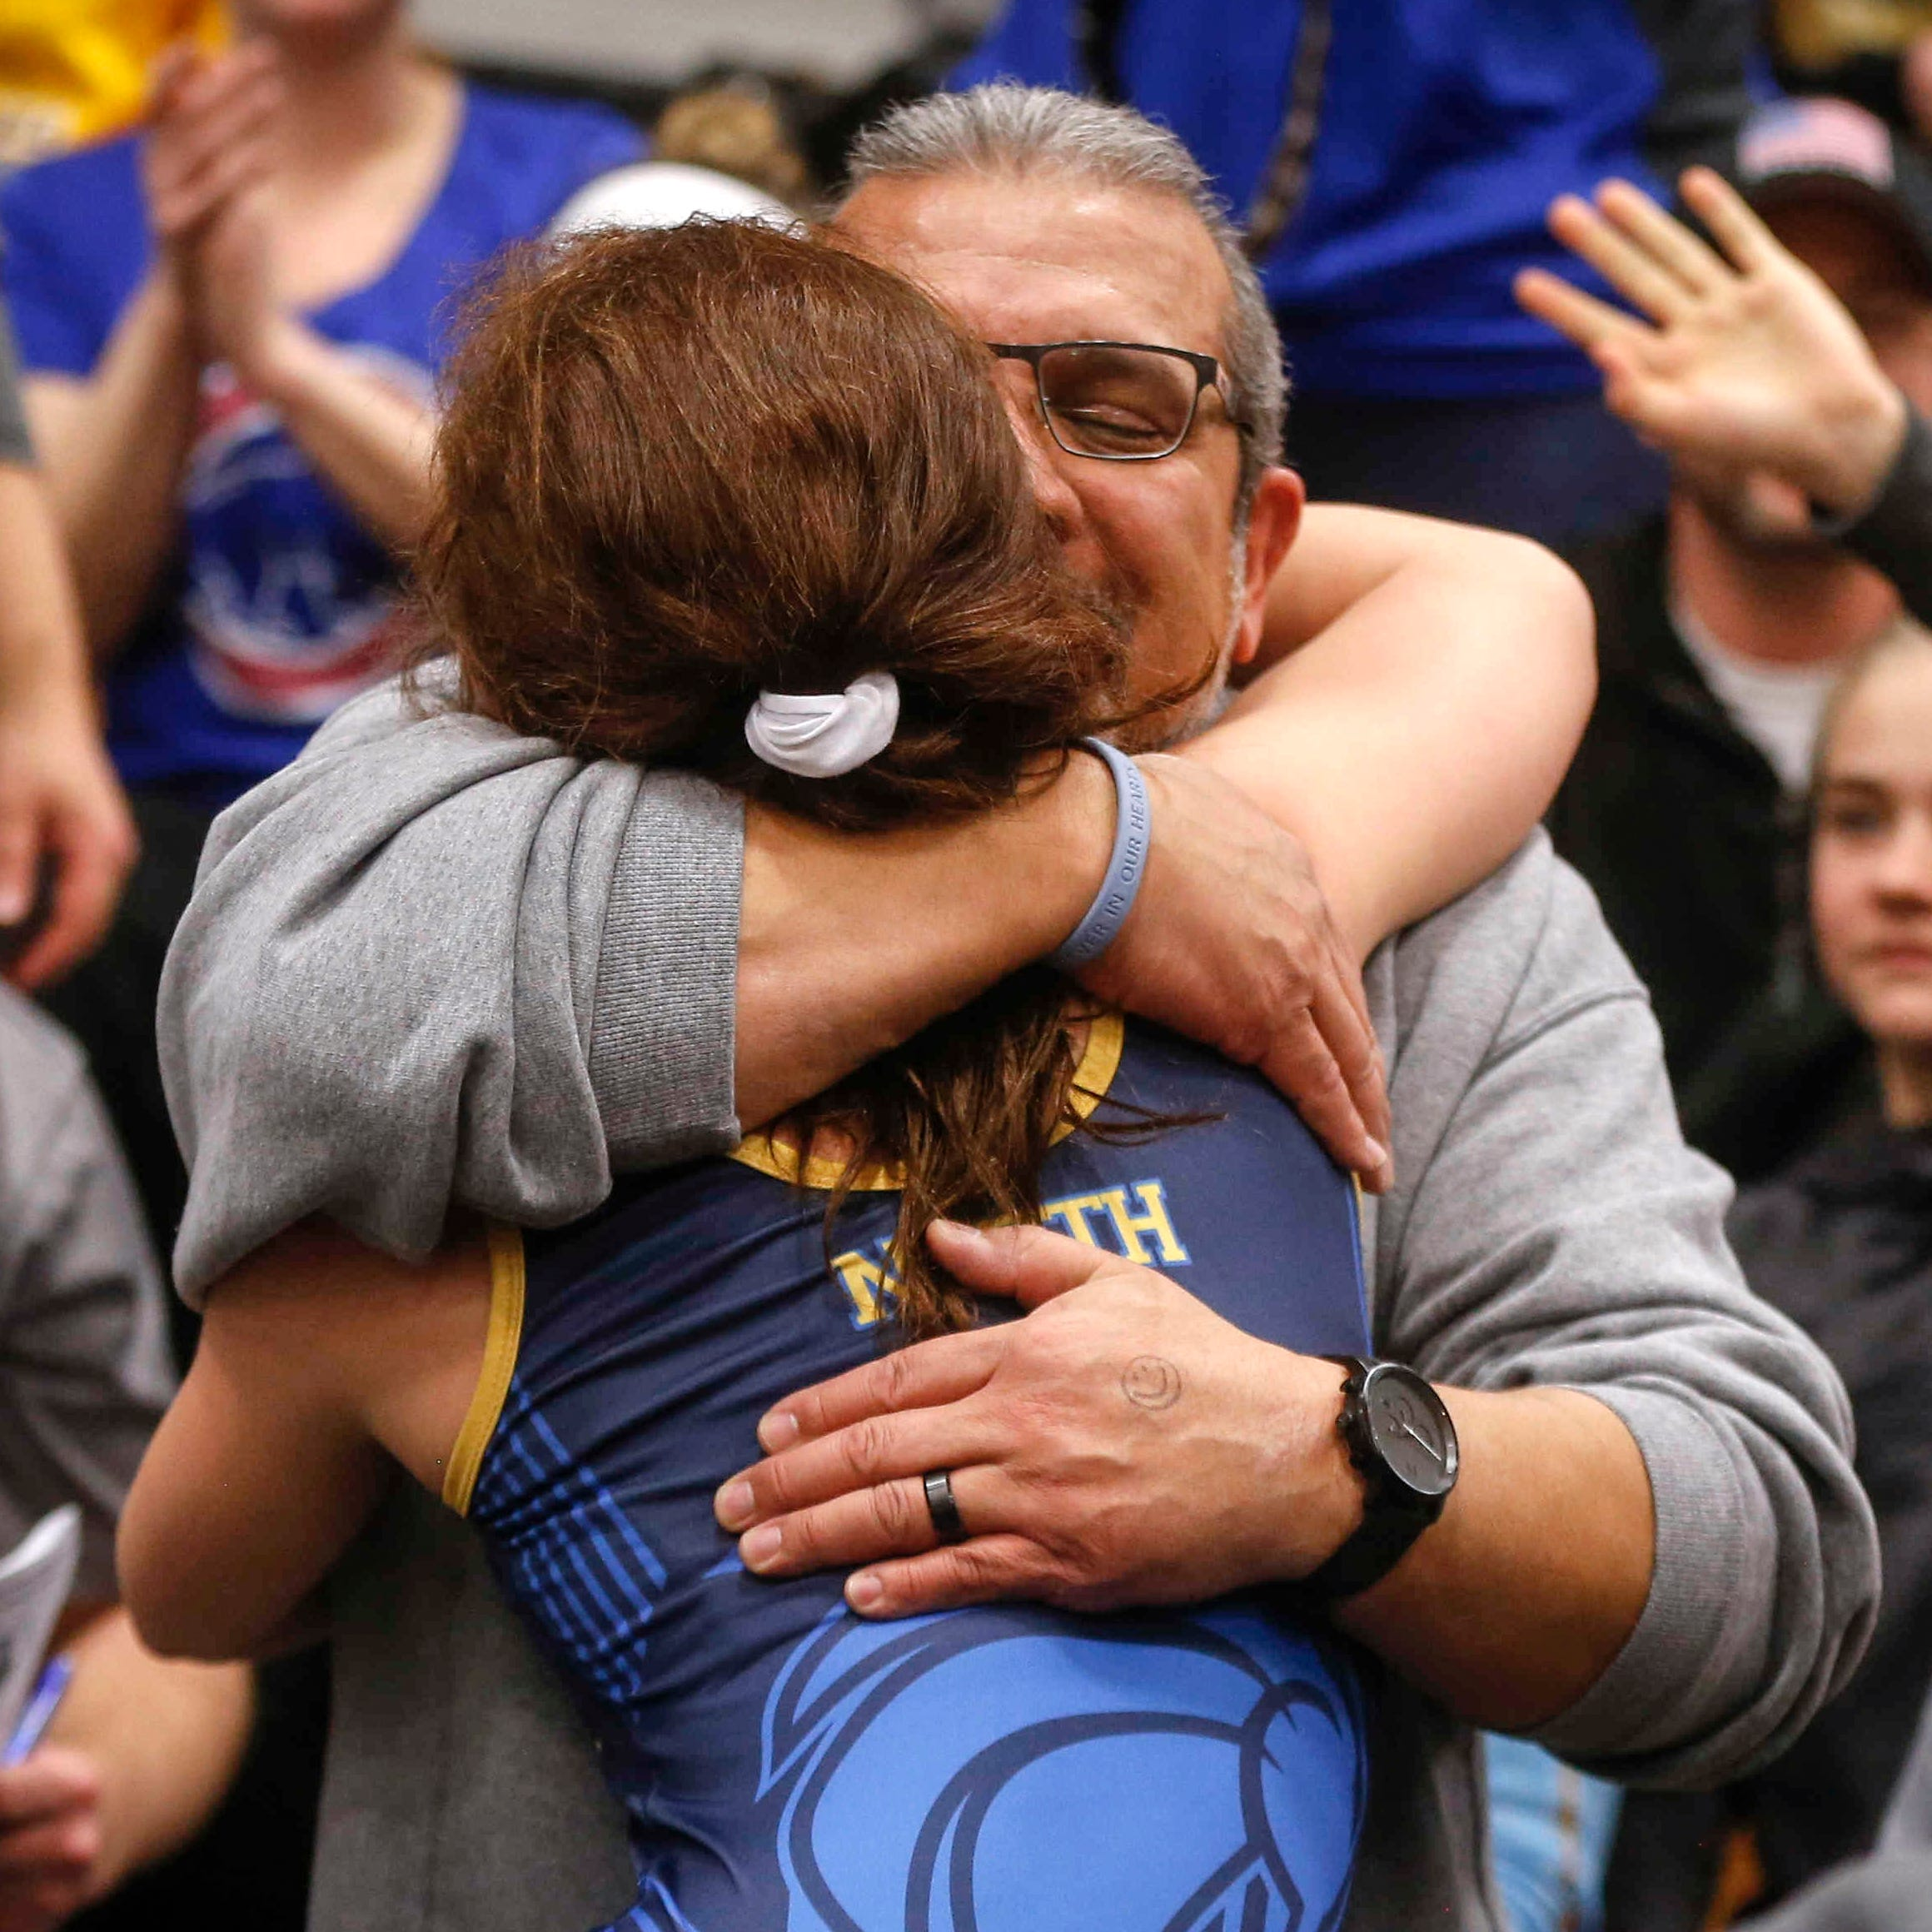 High school wrestling: Girls put on a show during their inaugural state tournament